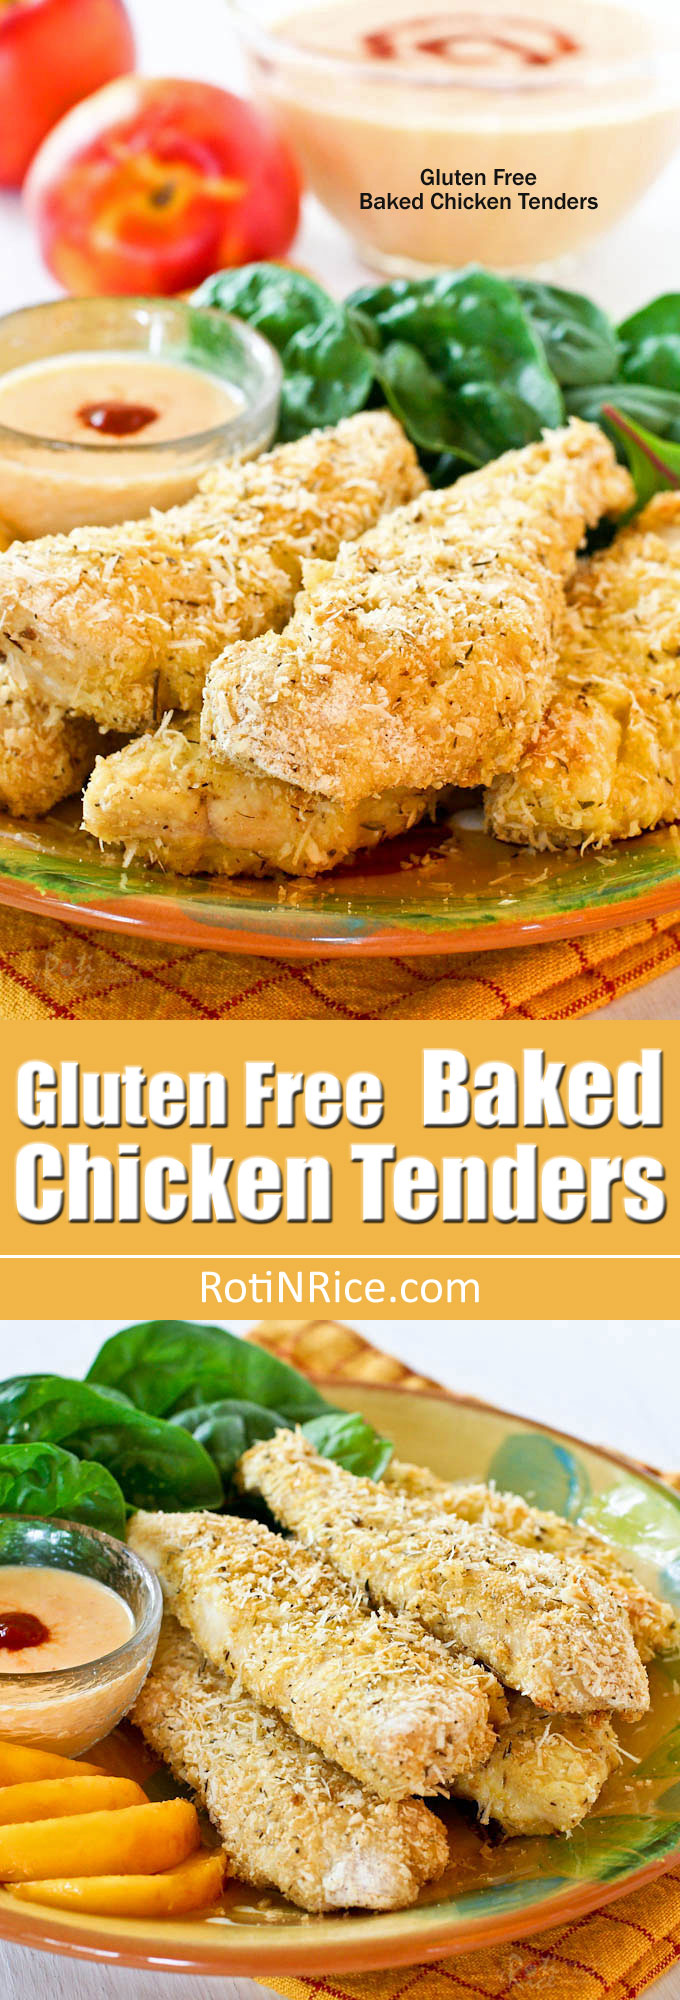 These Gluten Free Baked Chicken Tenders have a crunchy rice krispies and parmesan crust. They are delicious served with a Spicy Nectarine Yogurt Dip. | RotiNRice.com